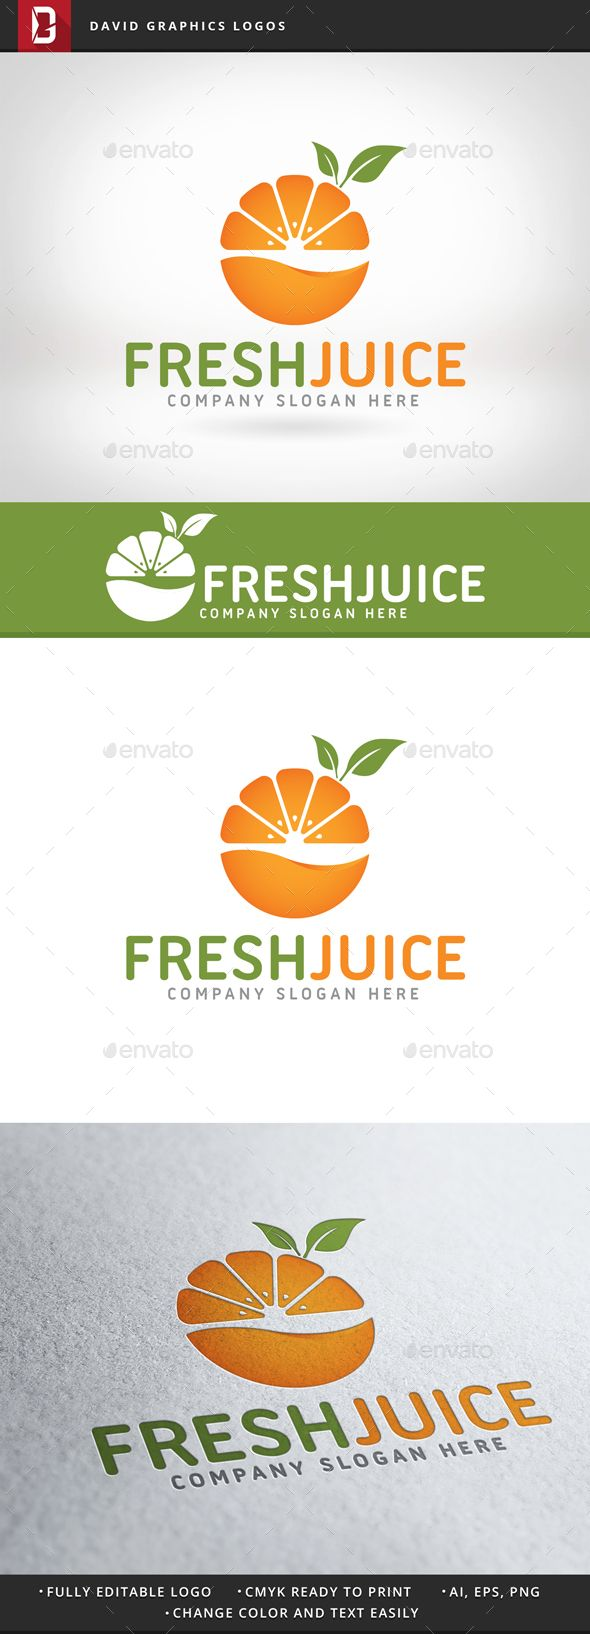 Fresh Juice PNG Images  Vectors and PSD Files  Free